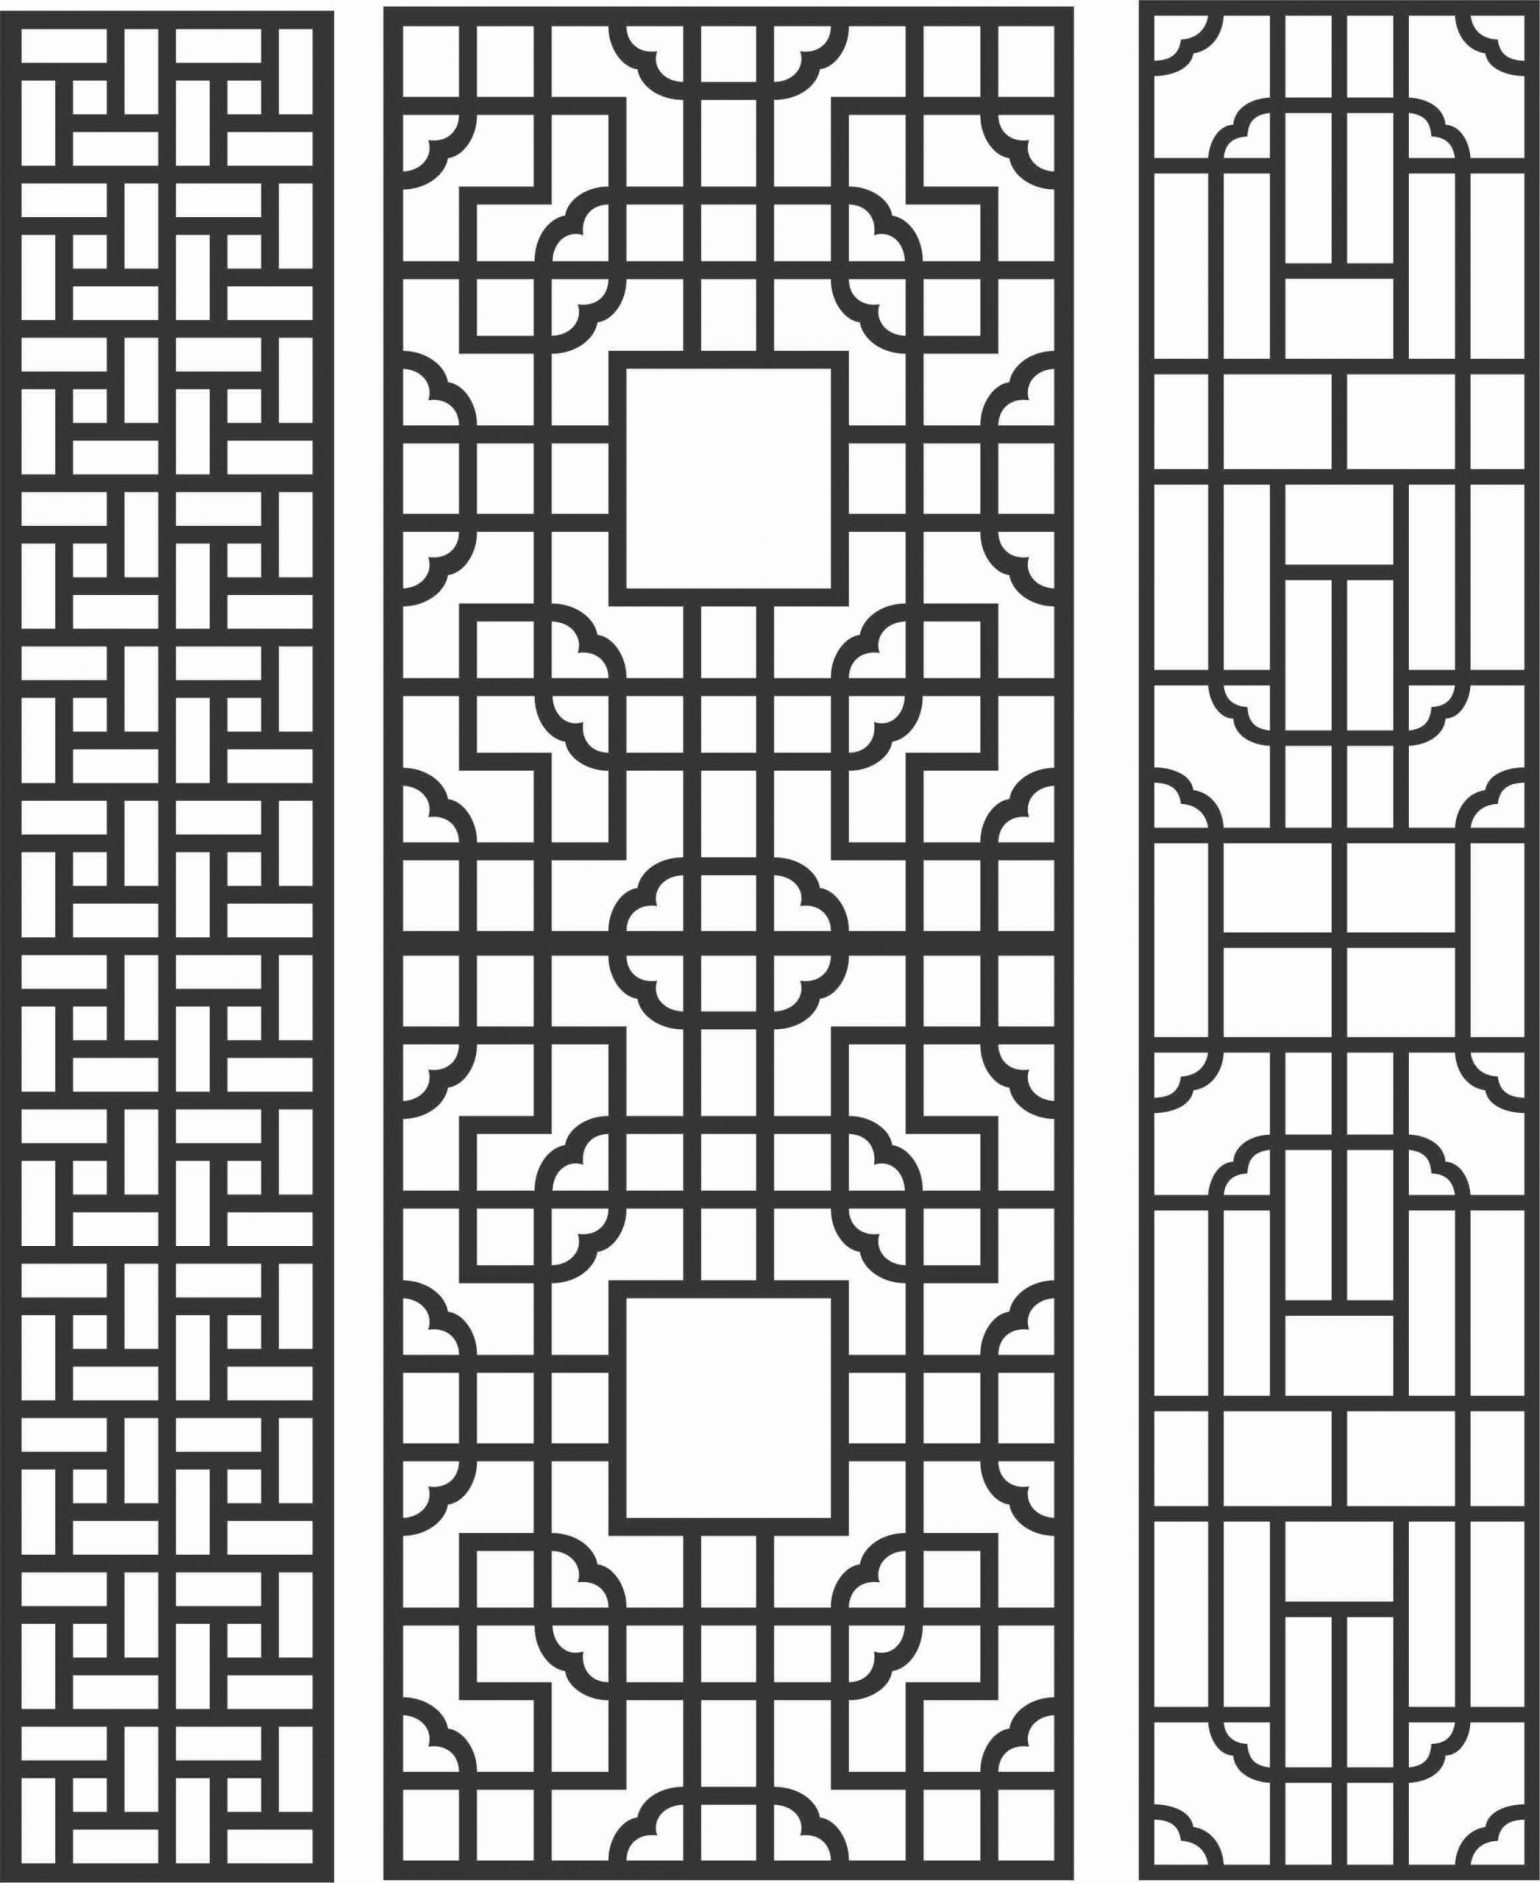 Decorative Screen Patterns For Laser Cutting 84 Free DXF File